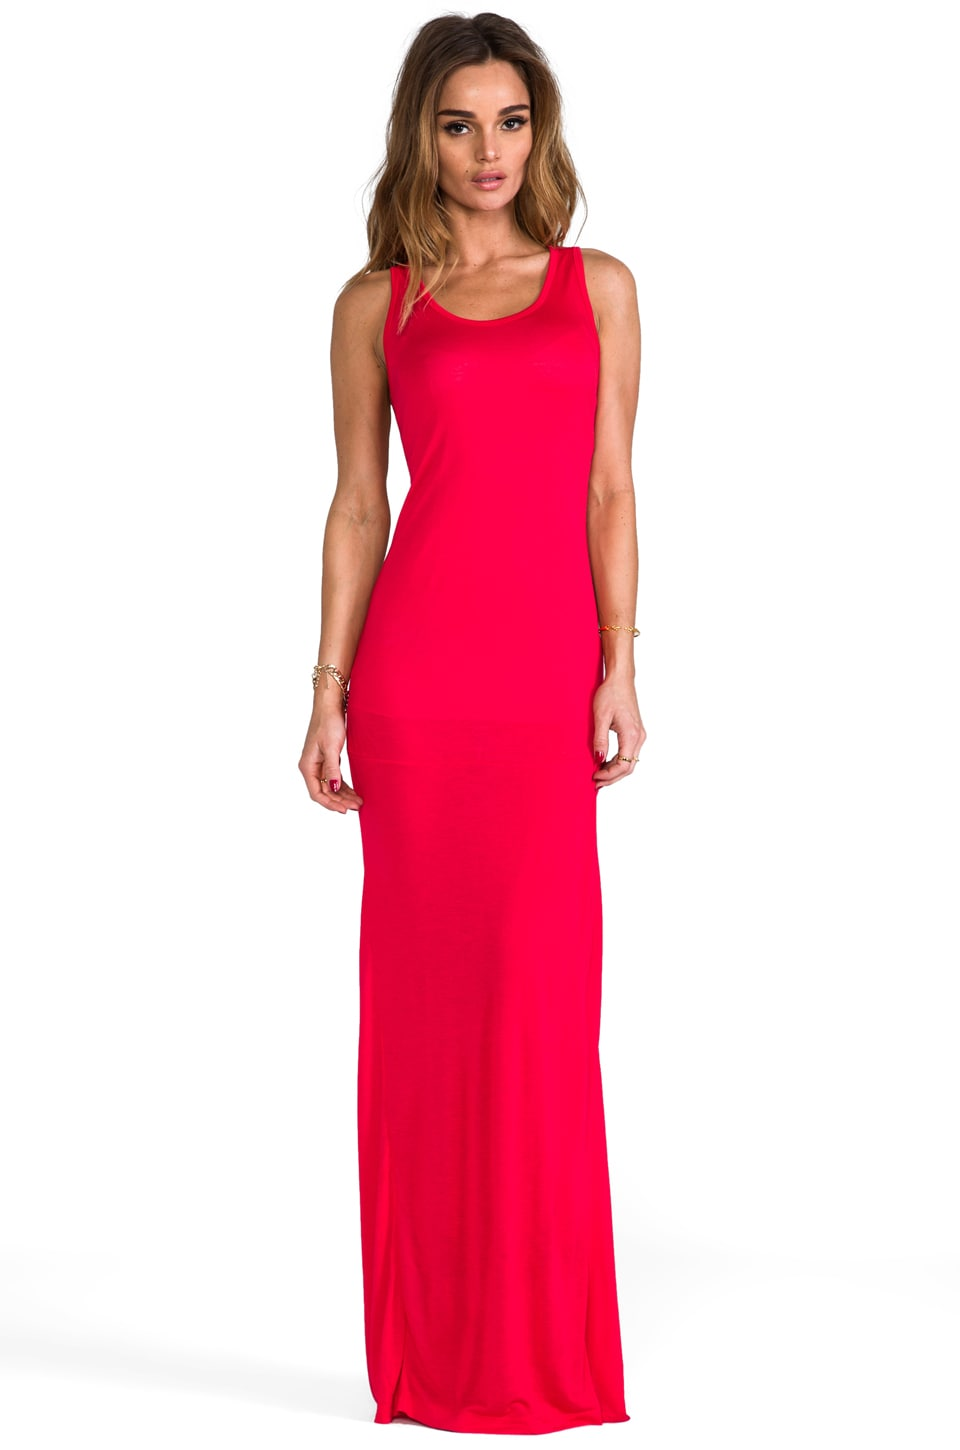 Pencey Standard Long Tank Dress in Red